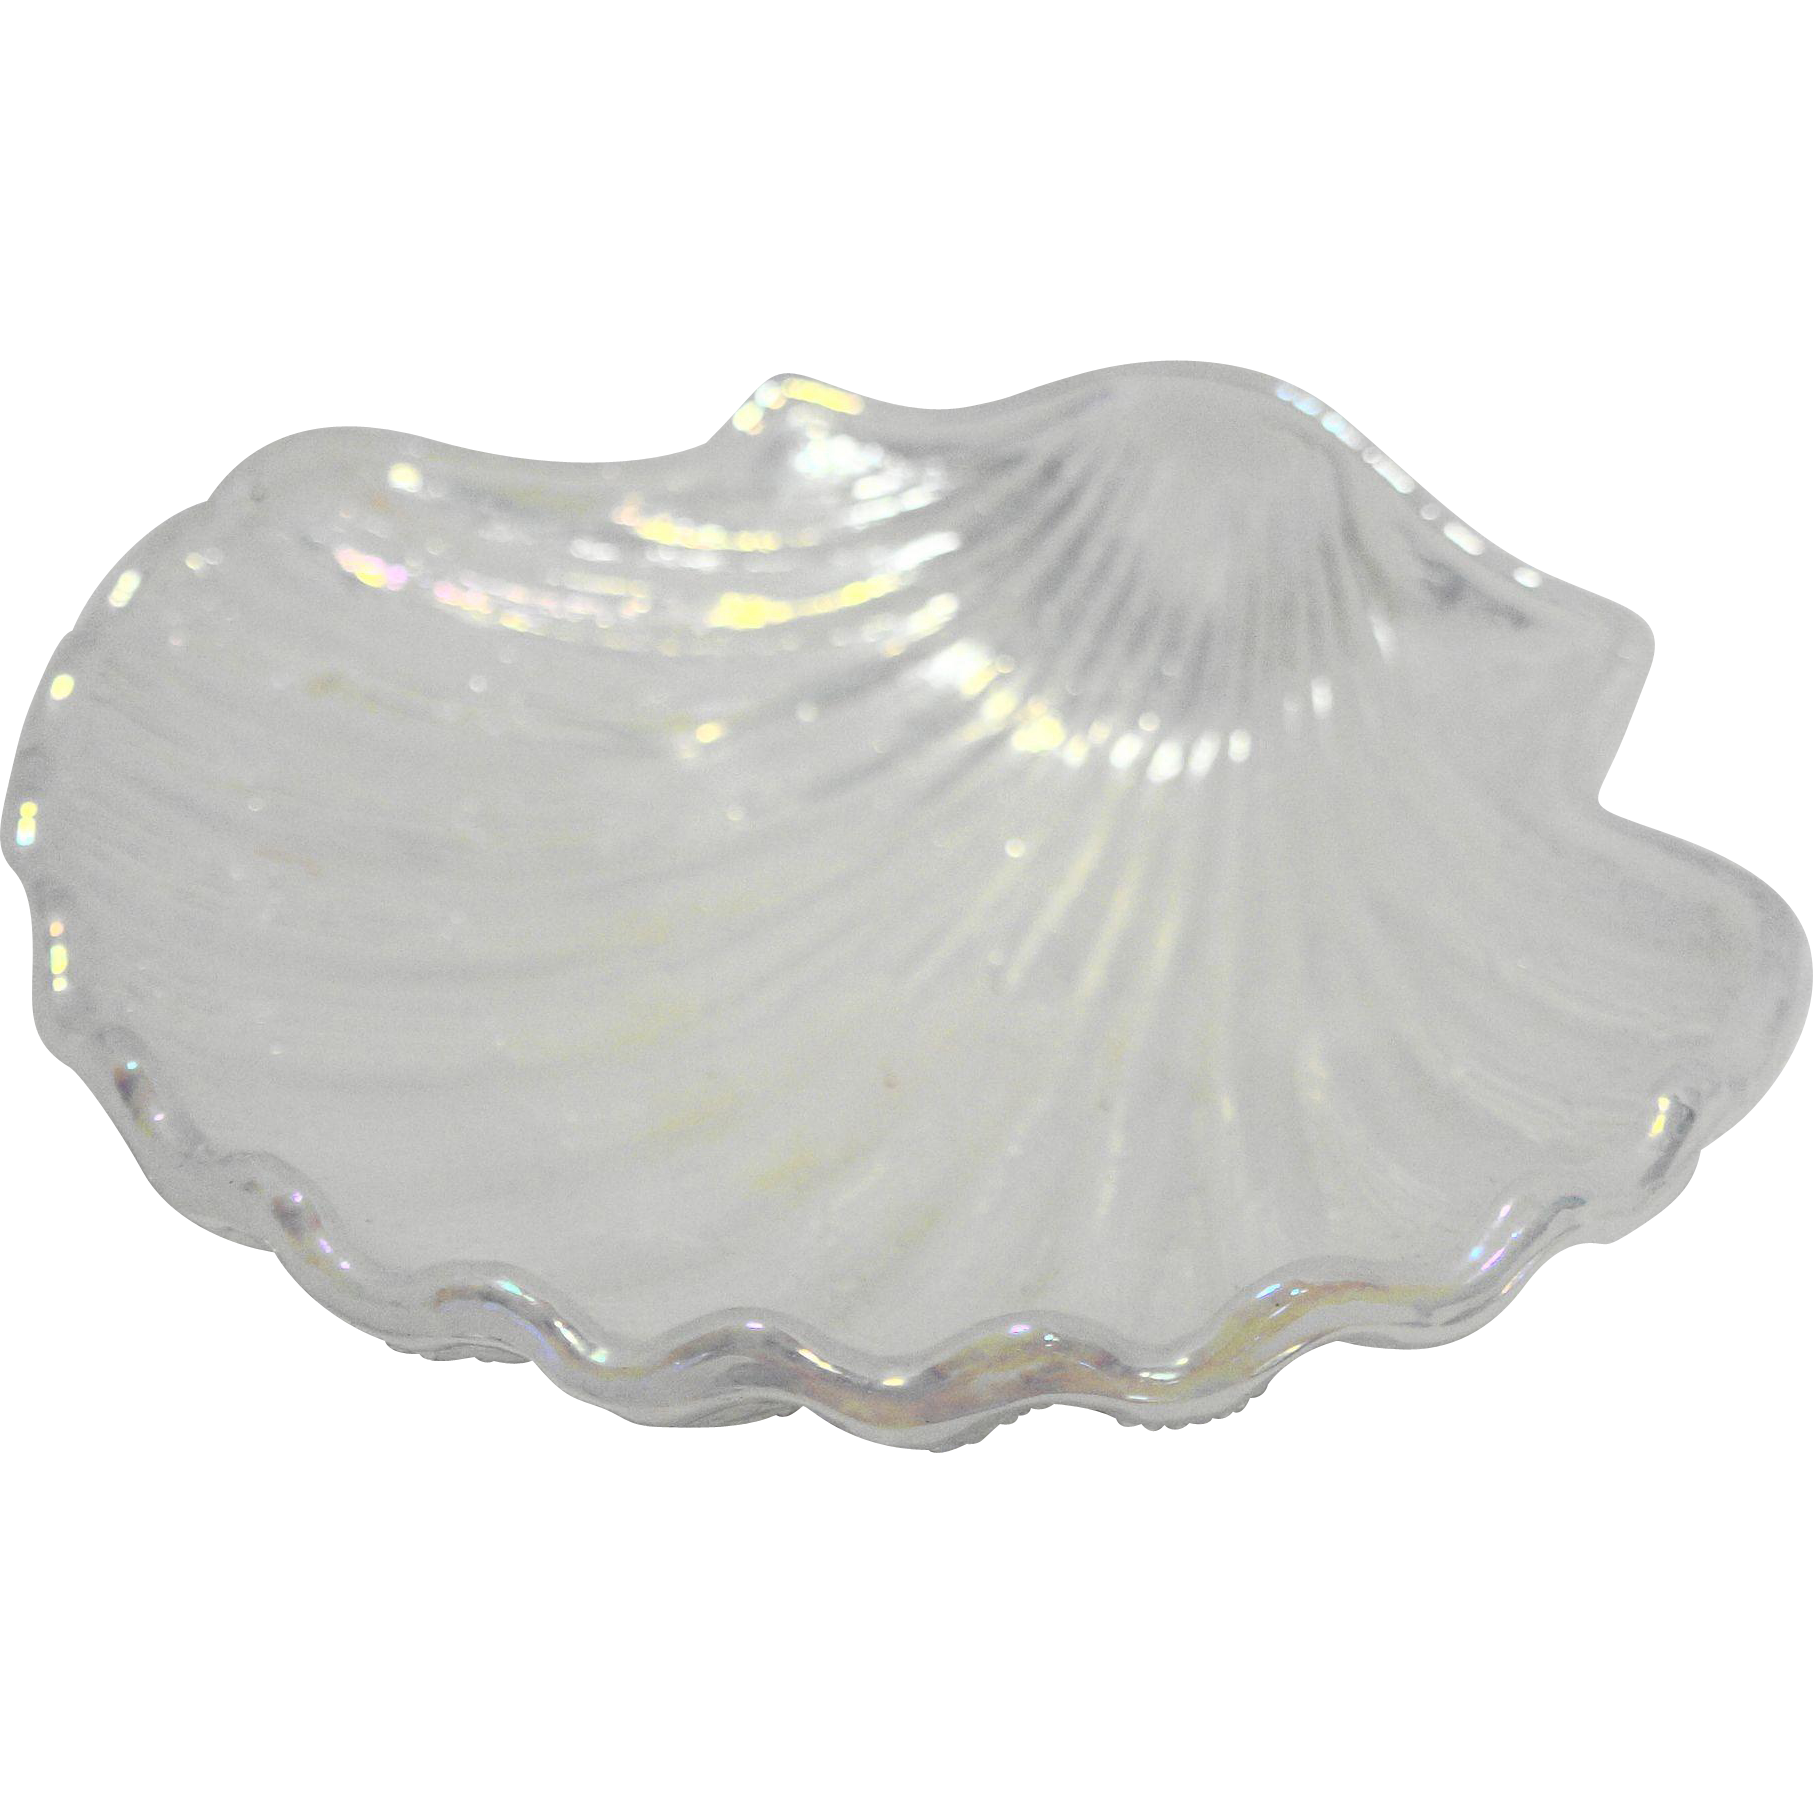 Avon Clam Sea Shell Iridescent White Glass Soap Dish